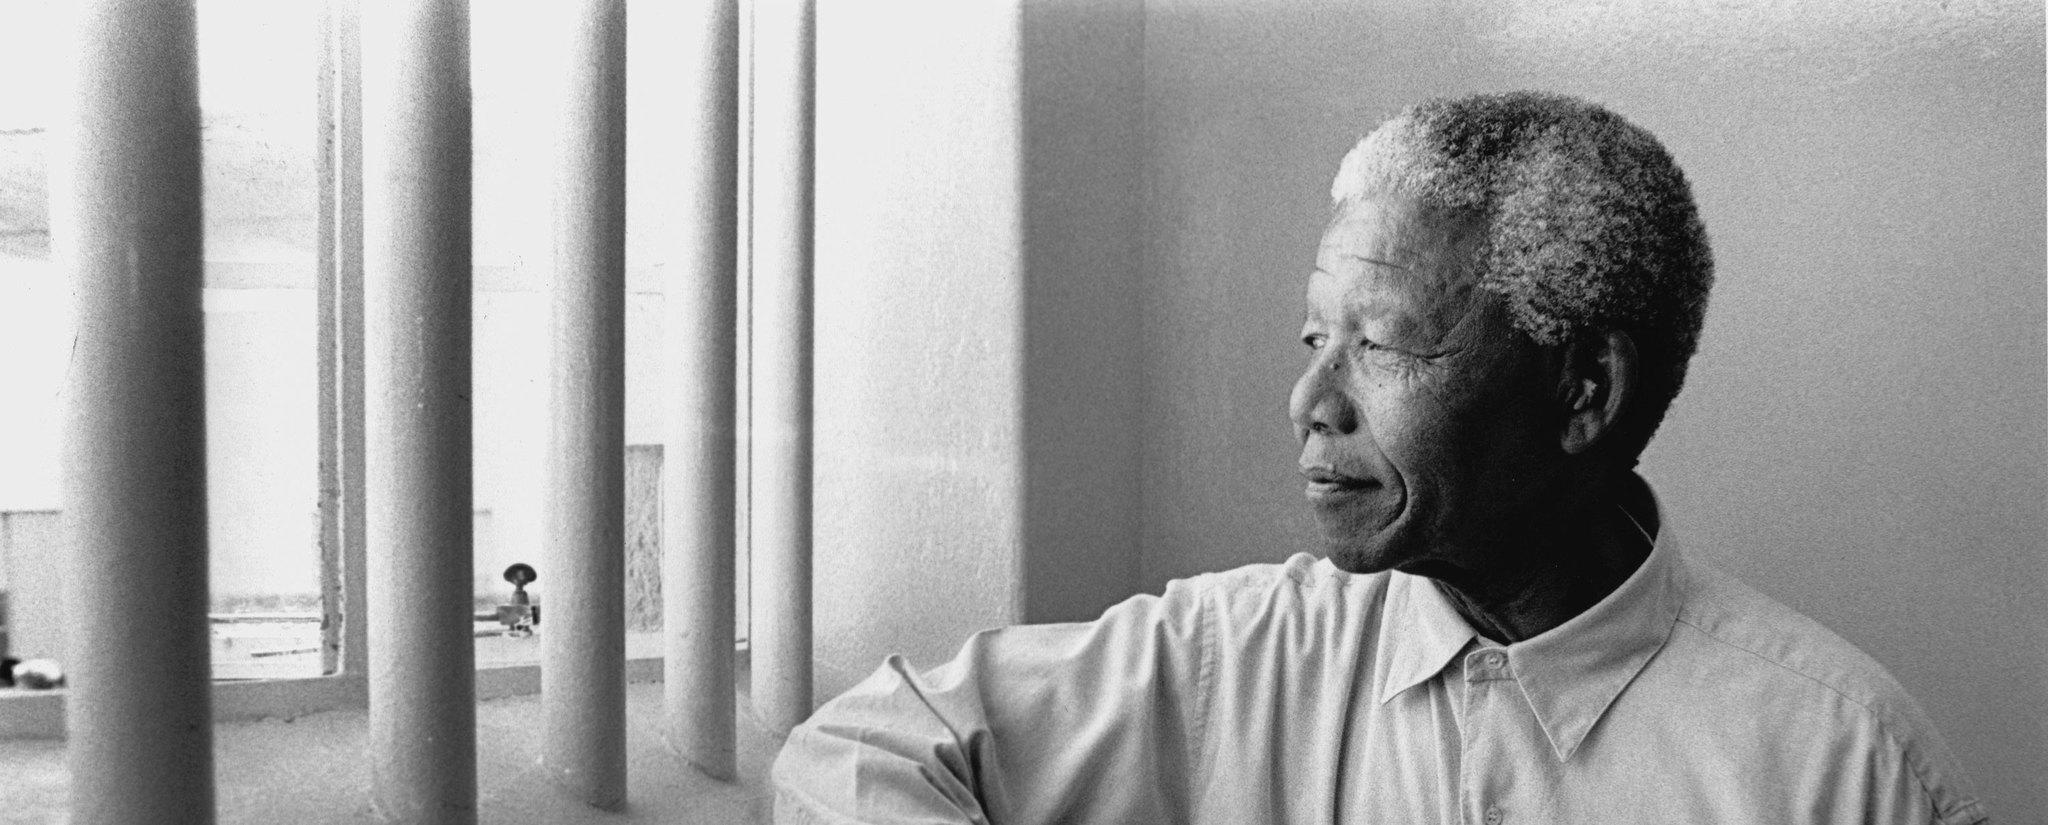 South Africa's first black President Nelson Mandela revisits his prison cell on Robben Island in 1994.  (Jurgen Schadeberg / Getty Images)